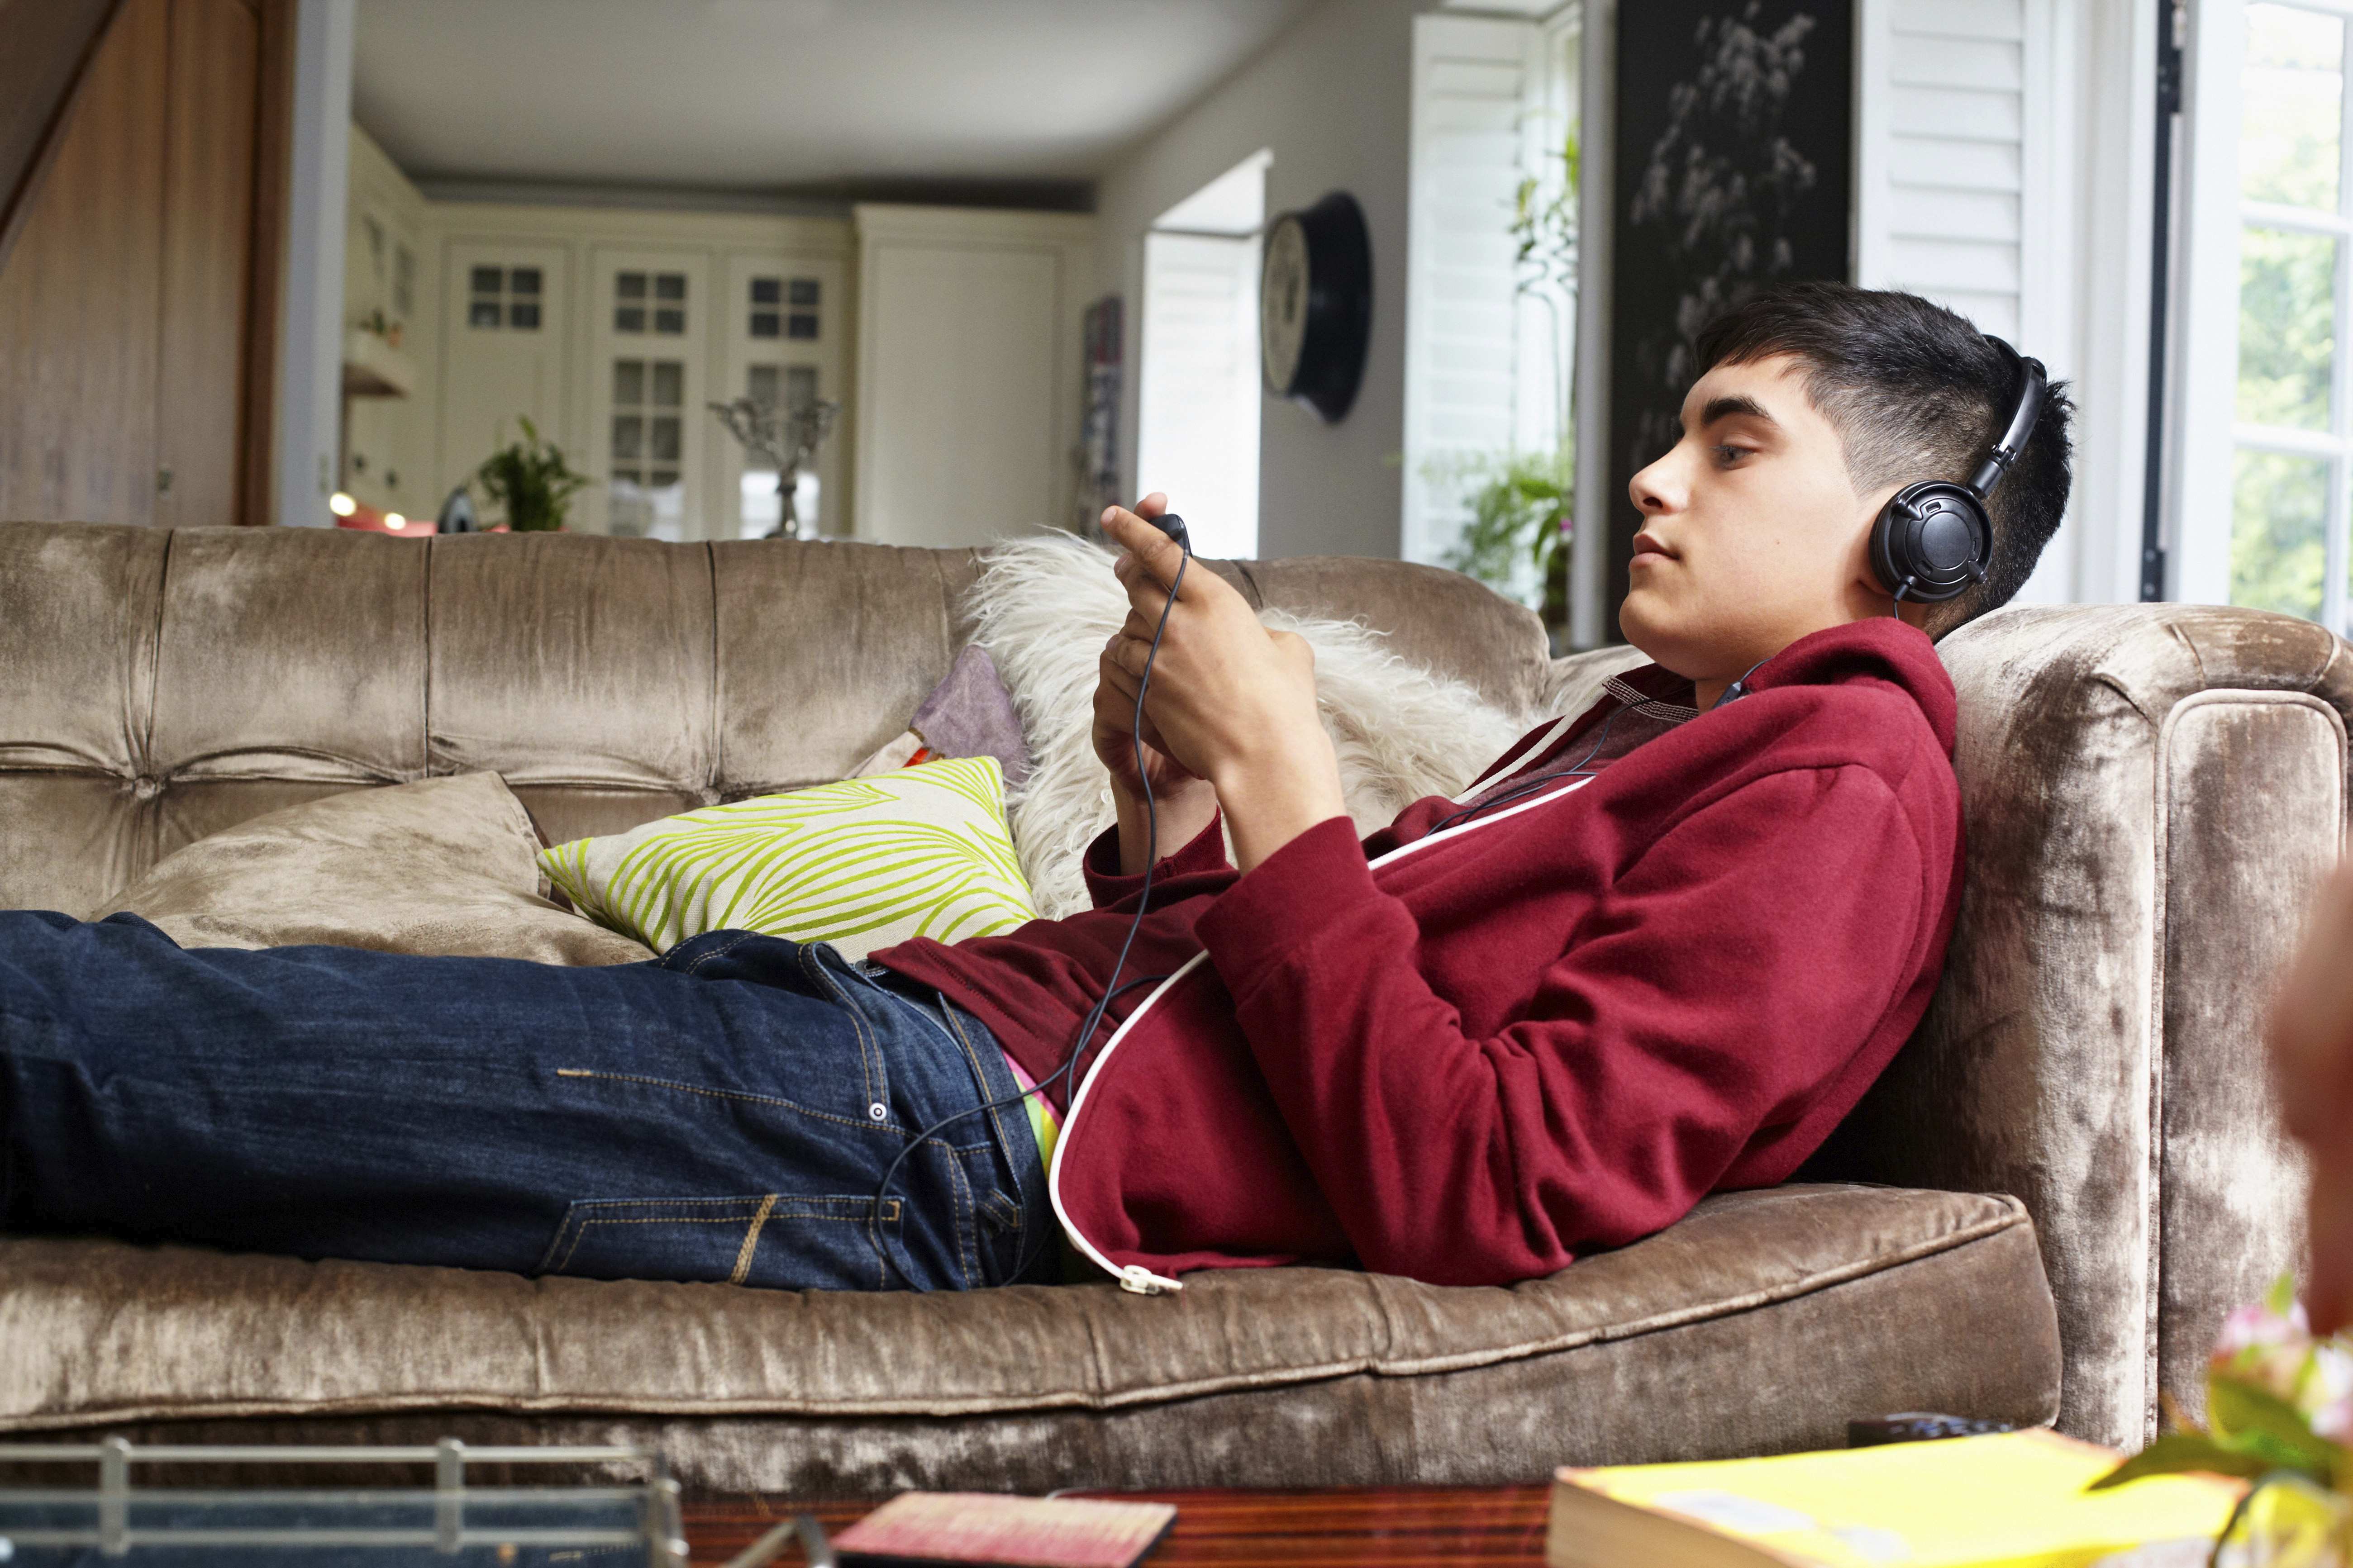 Revealed: the science behind teenage laziness